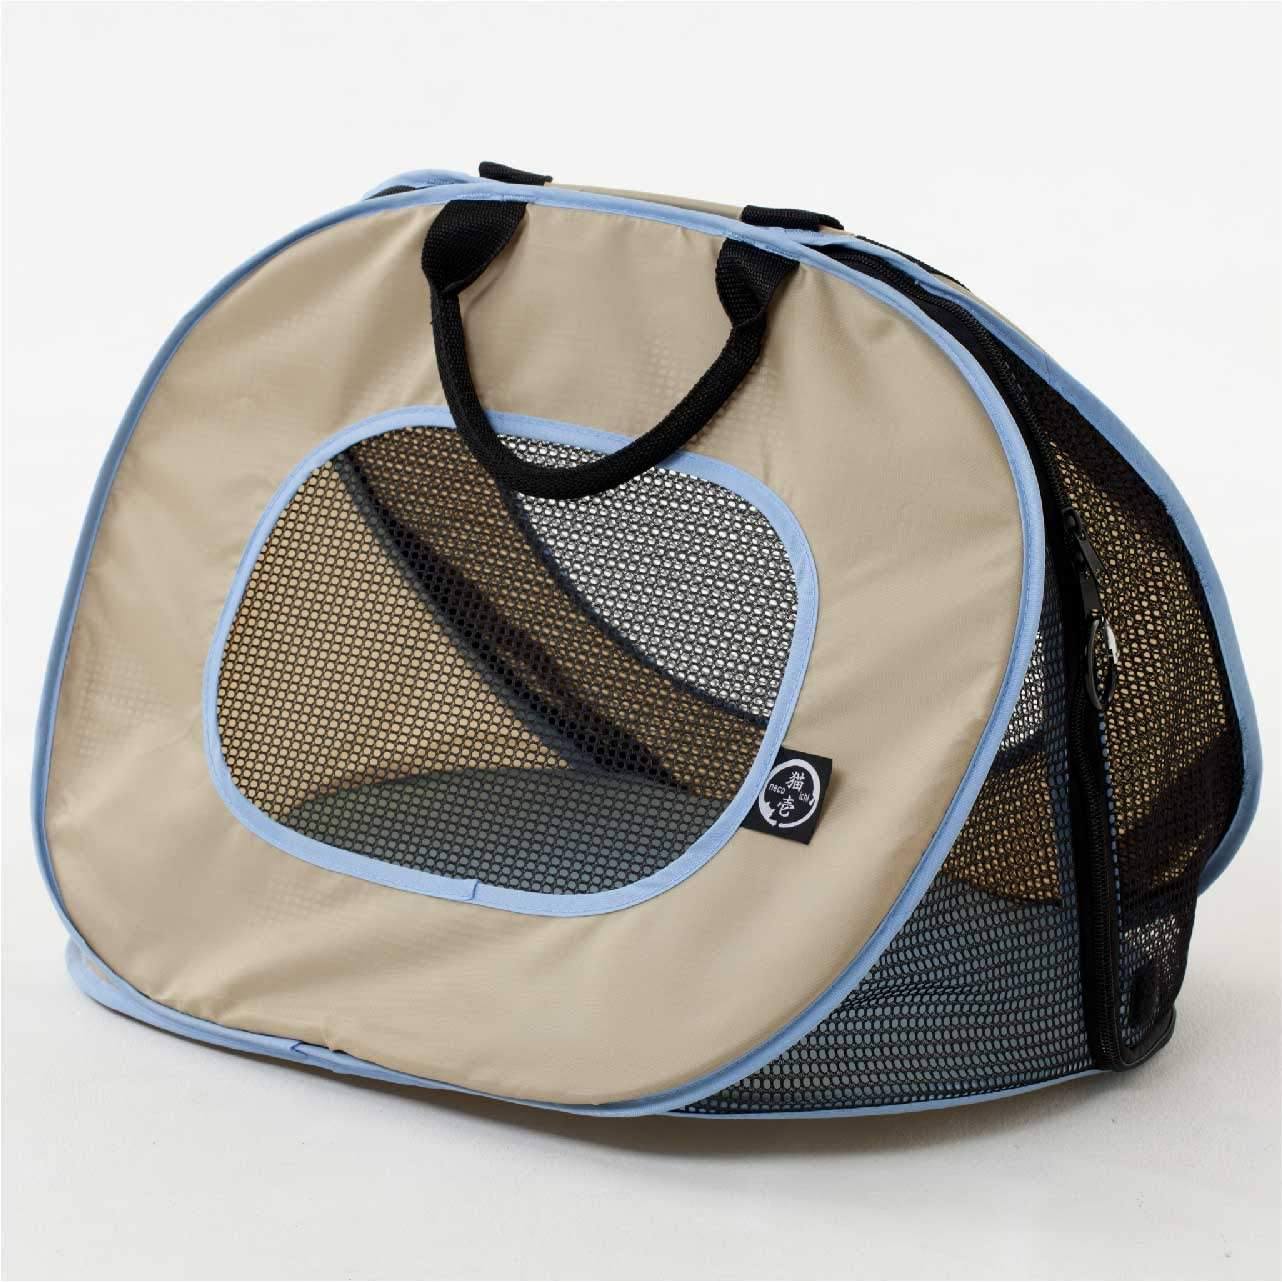 Top 10 Best Cat Carriers For Nervous Cats [Updated November 2020] 8